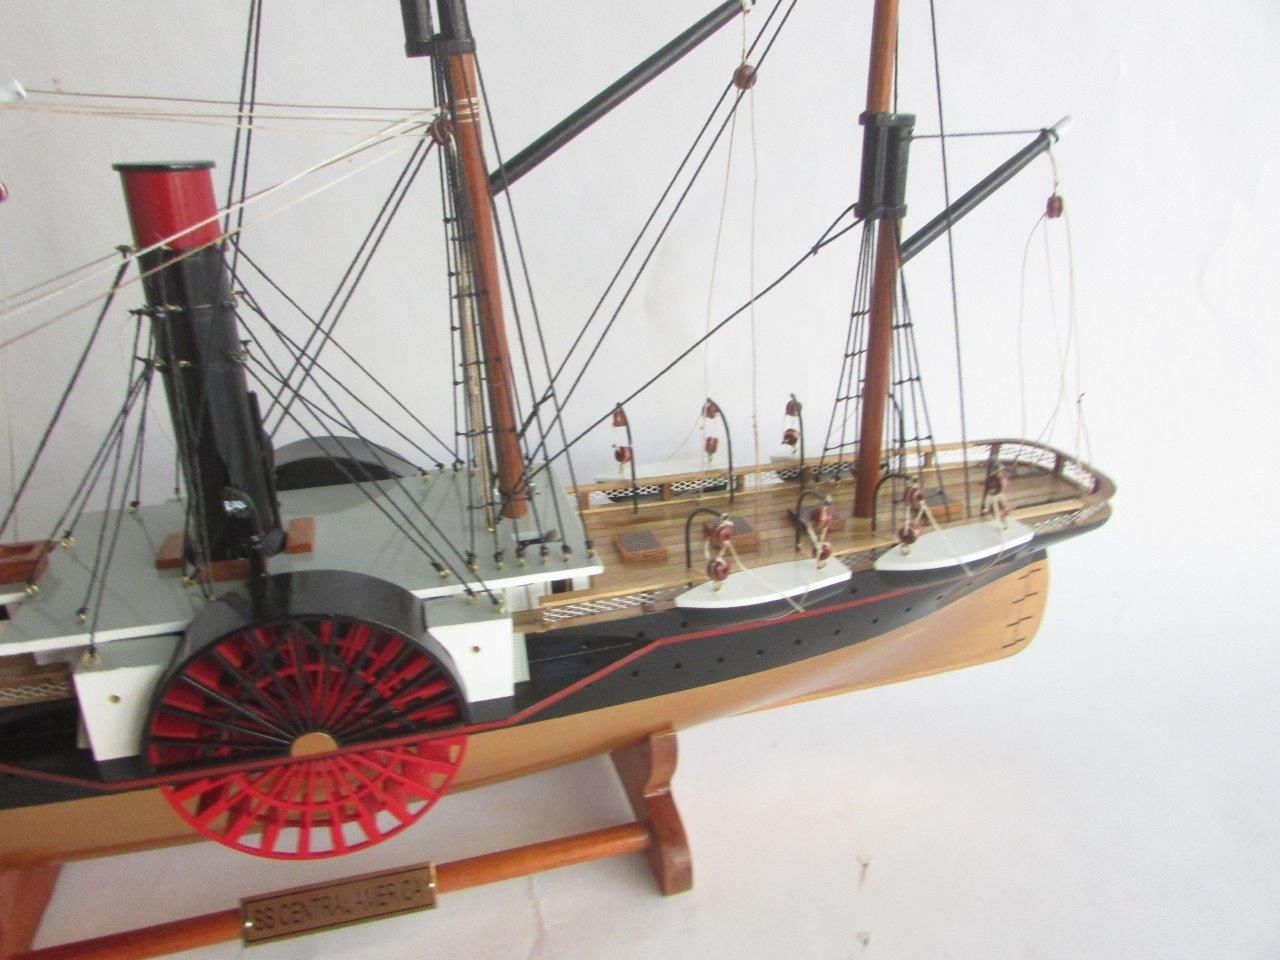 2053-13809-SS-Central-America-wooden-model-ship